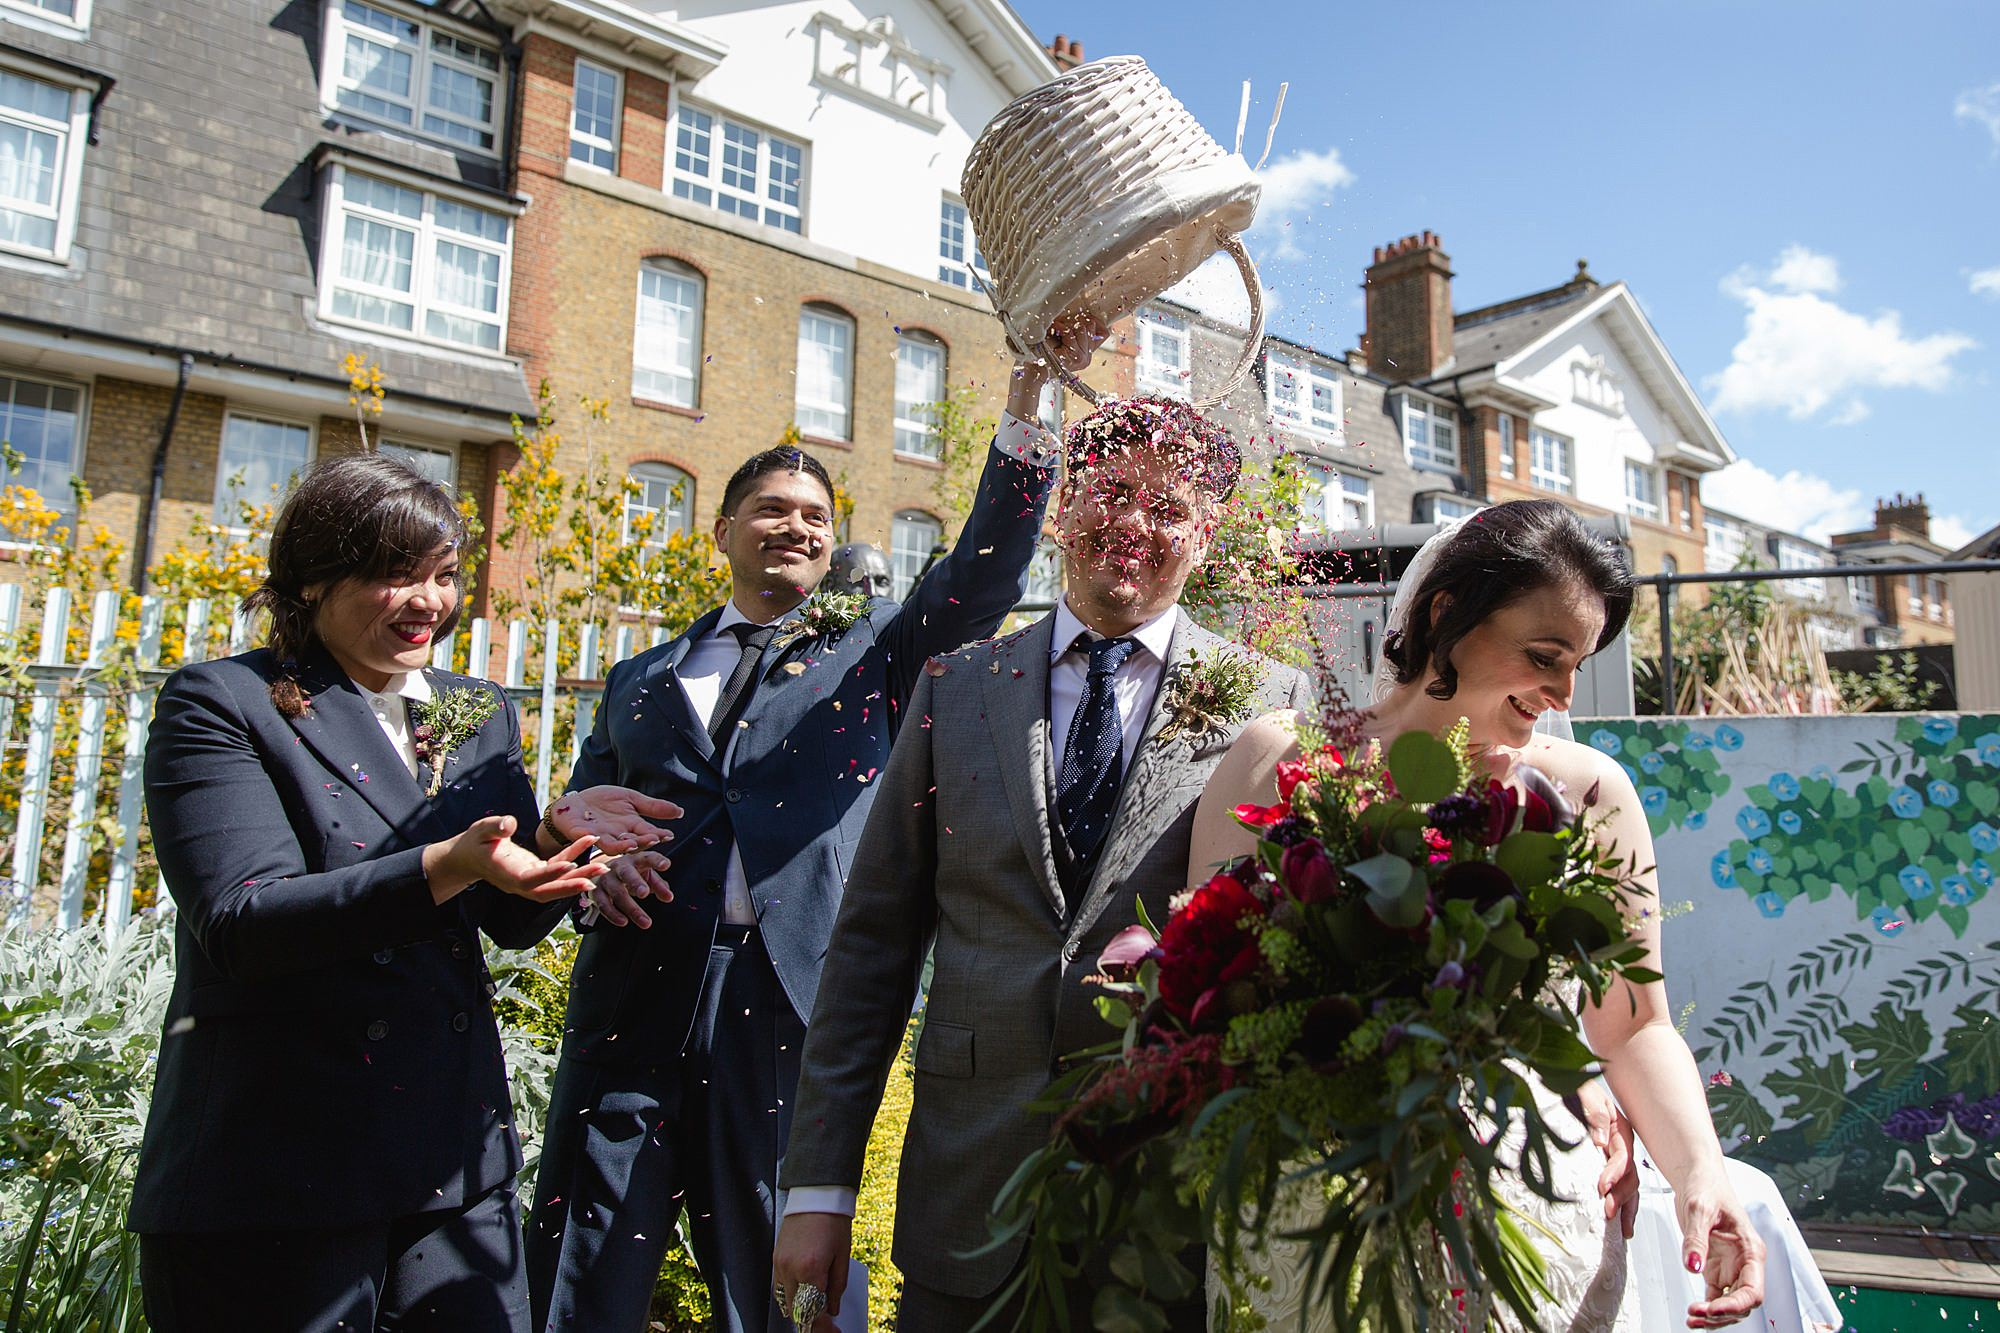 Brunel museum wedding guest dumps confetti over groom